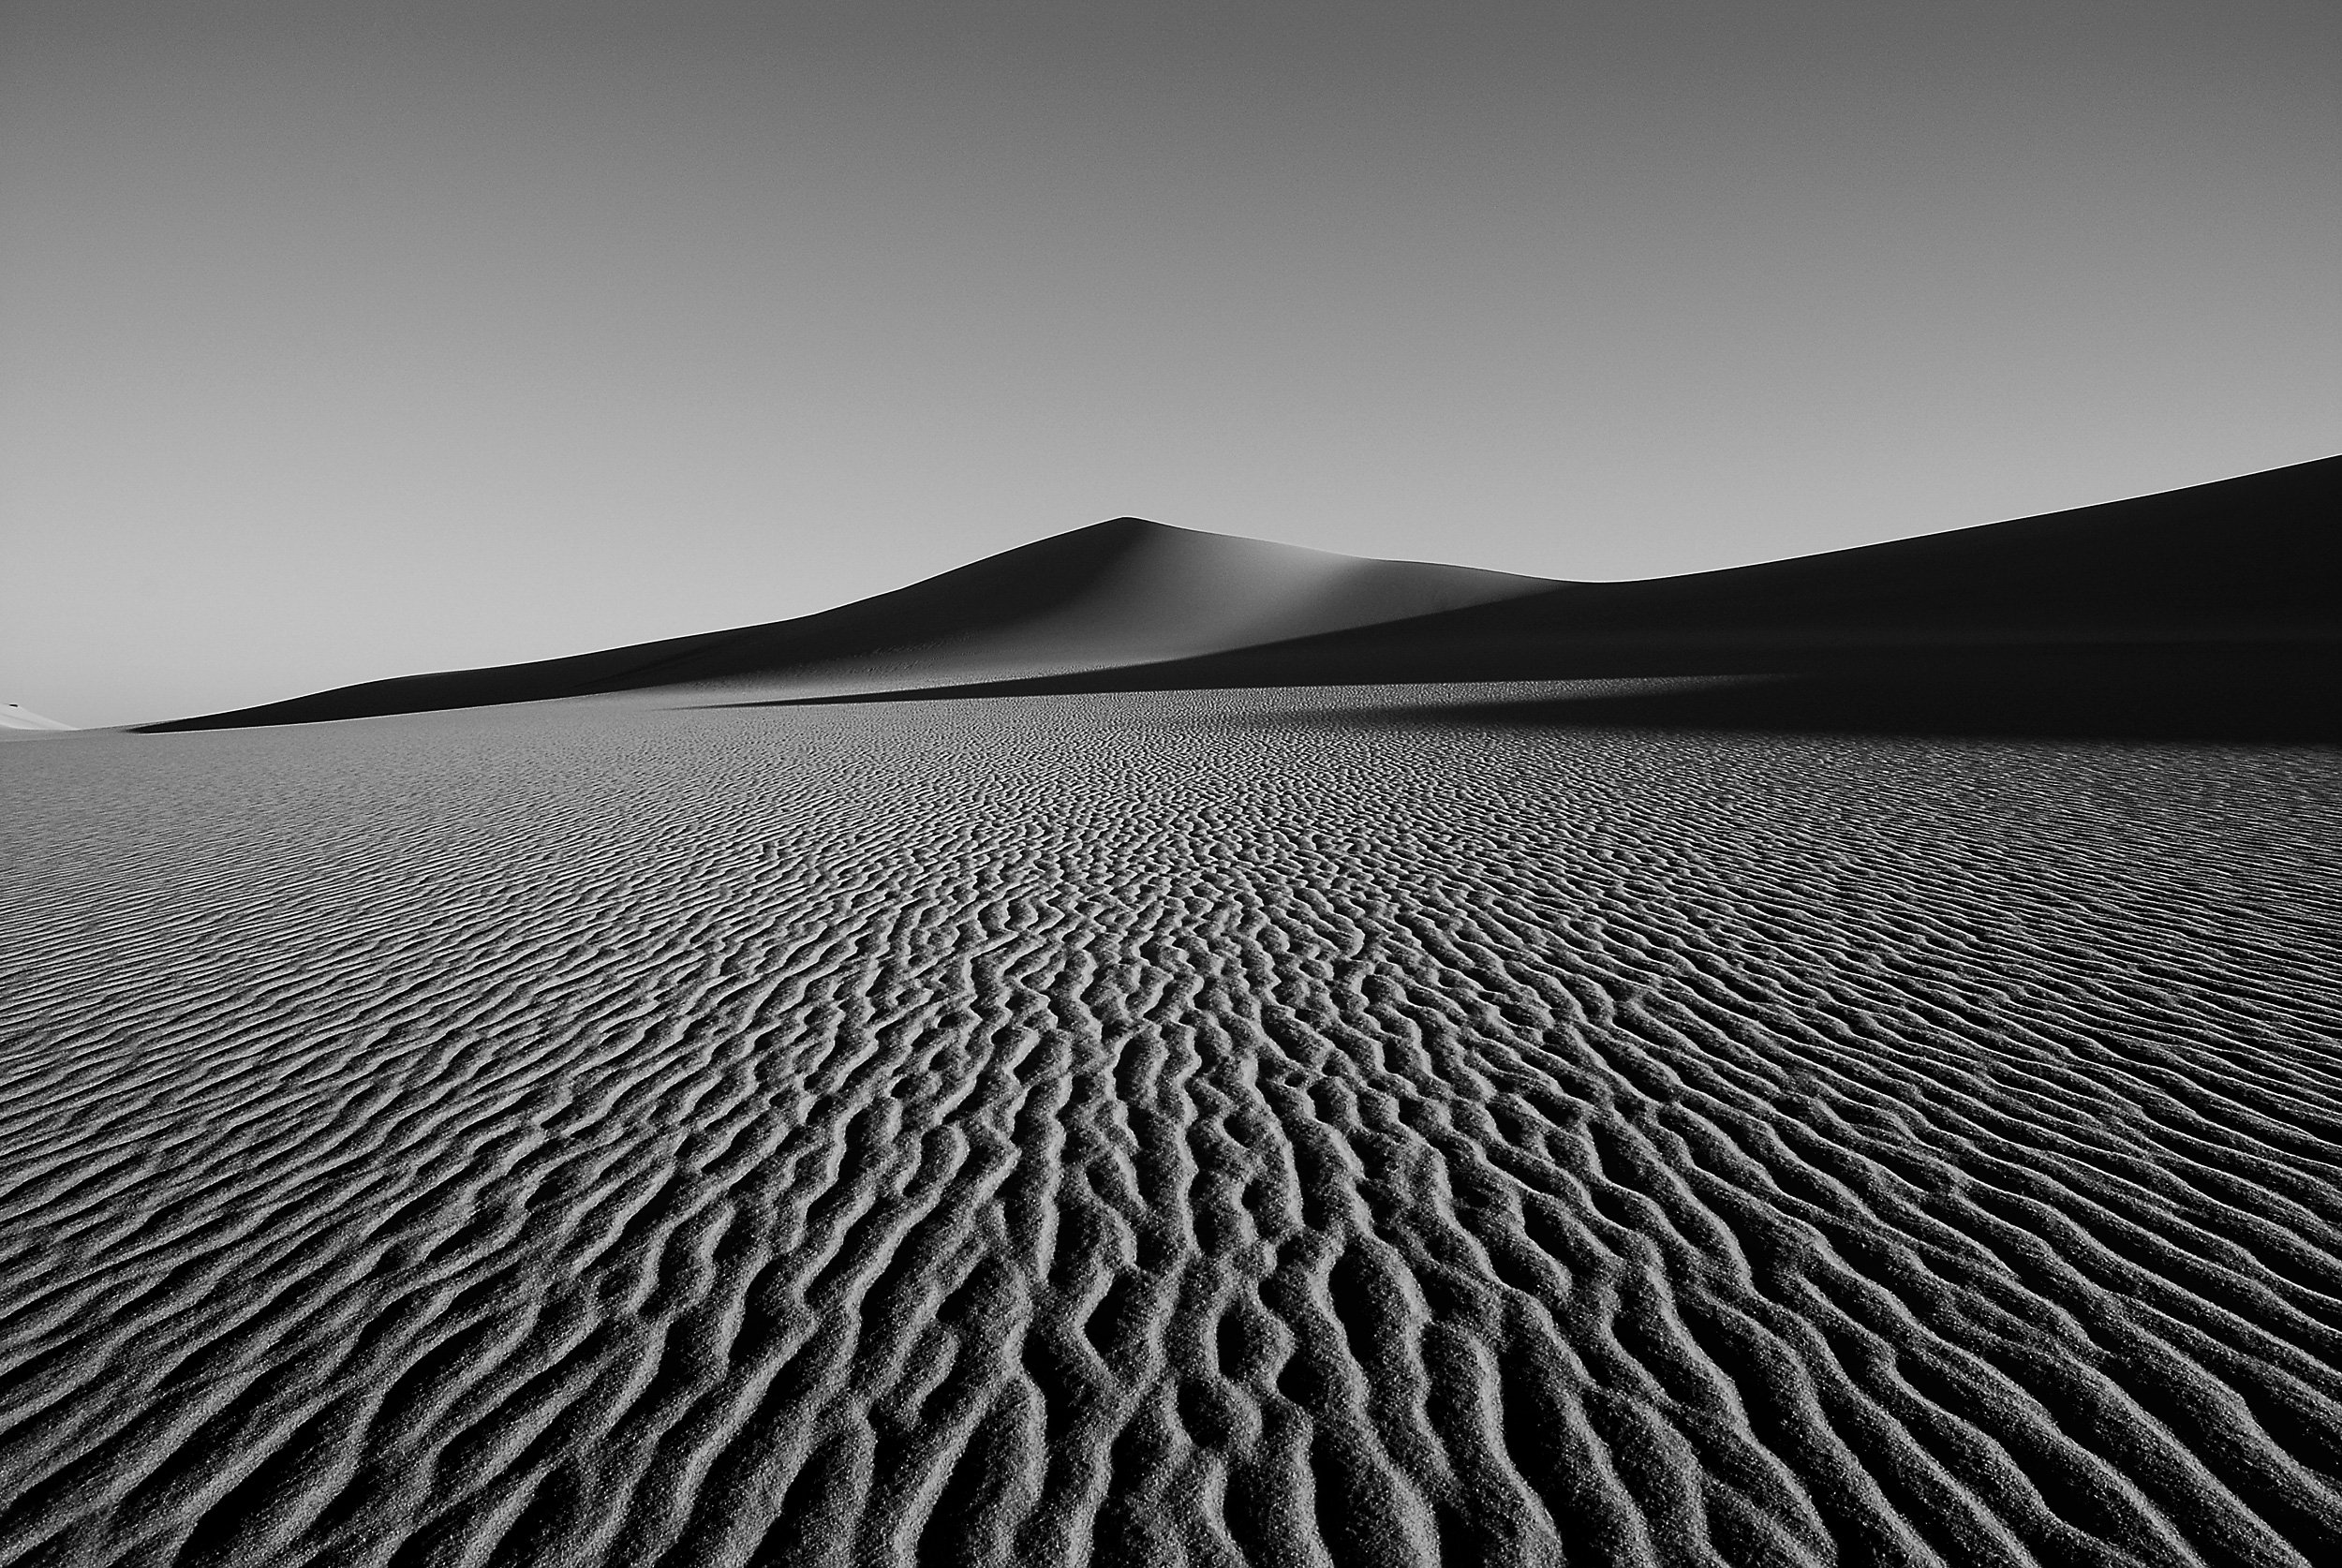 black and white, high contrasted landscape photography of a sand dune in the desert